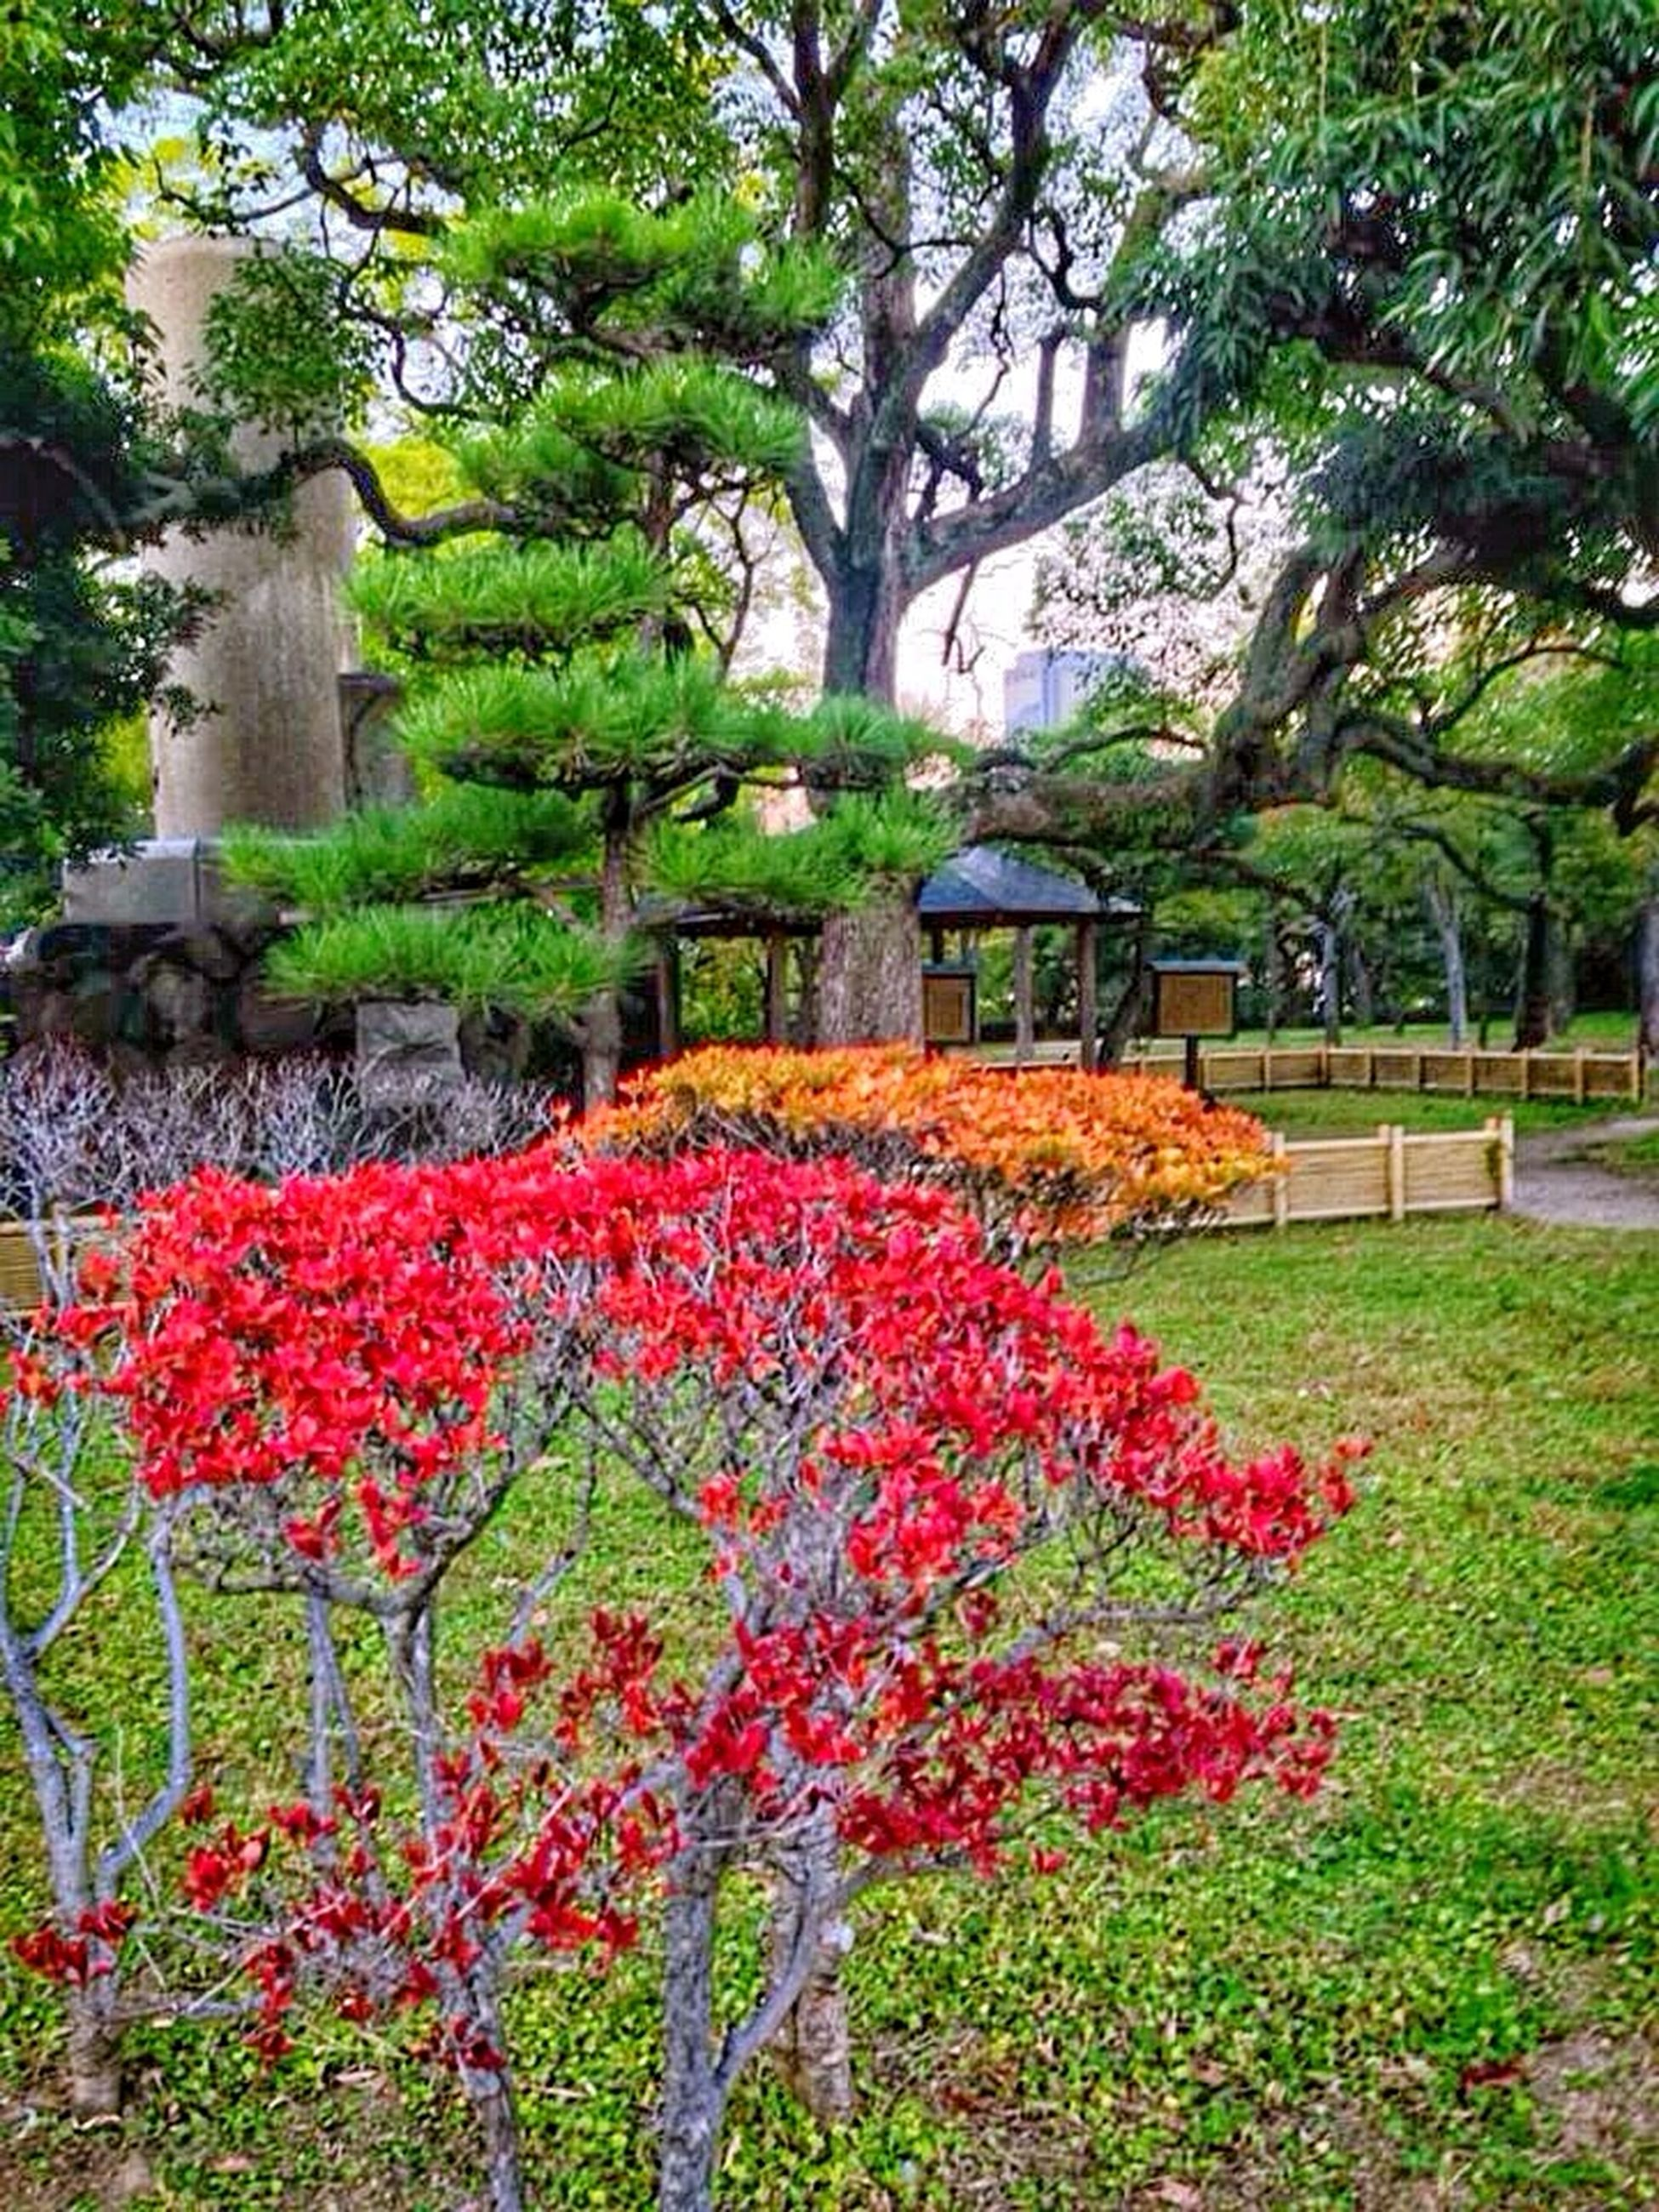 flower, freshness, growth, beauty in nature, tree, fragility, plant, nature, park - man made space, blooming, green color, formal garden, petal, red, pink color, blossom, garden, in bloom, lawn, flowerbed